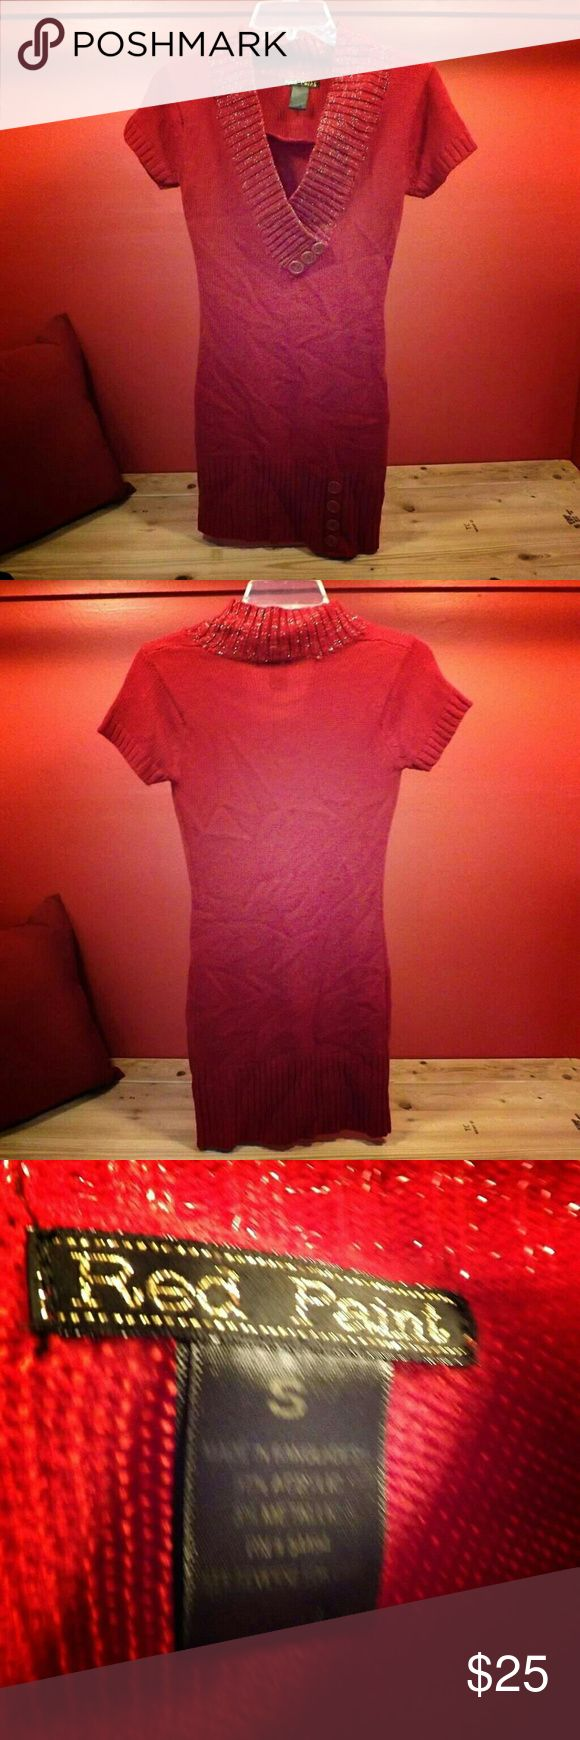 Red Paint Super Cute Red Dress! This Red Paint dress is the definition of cute! Without a doubt this dress with make you look your best!(: on top of that this dress will keep you nice and warm in the colder weather! Offers are welcomed!(: red paint Dresses